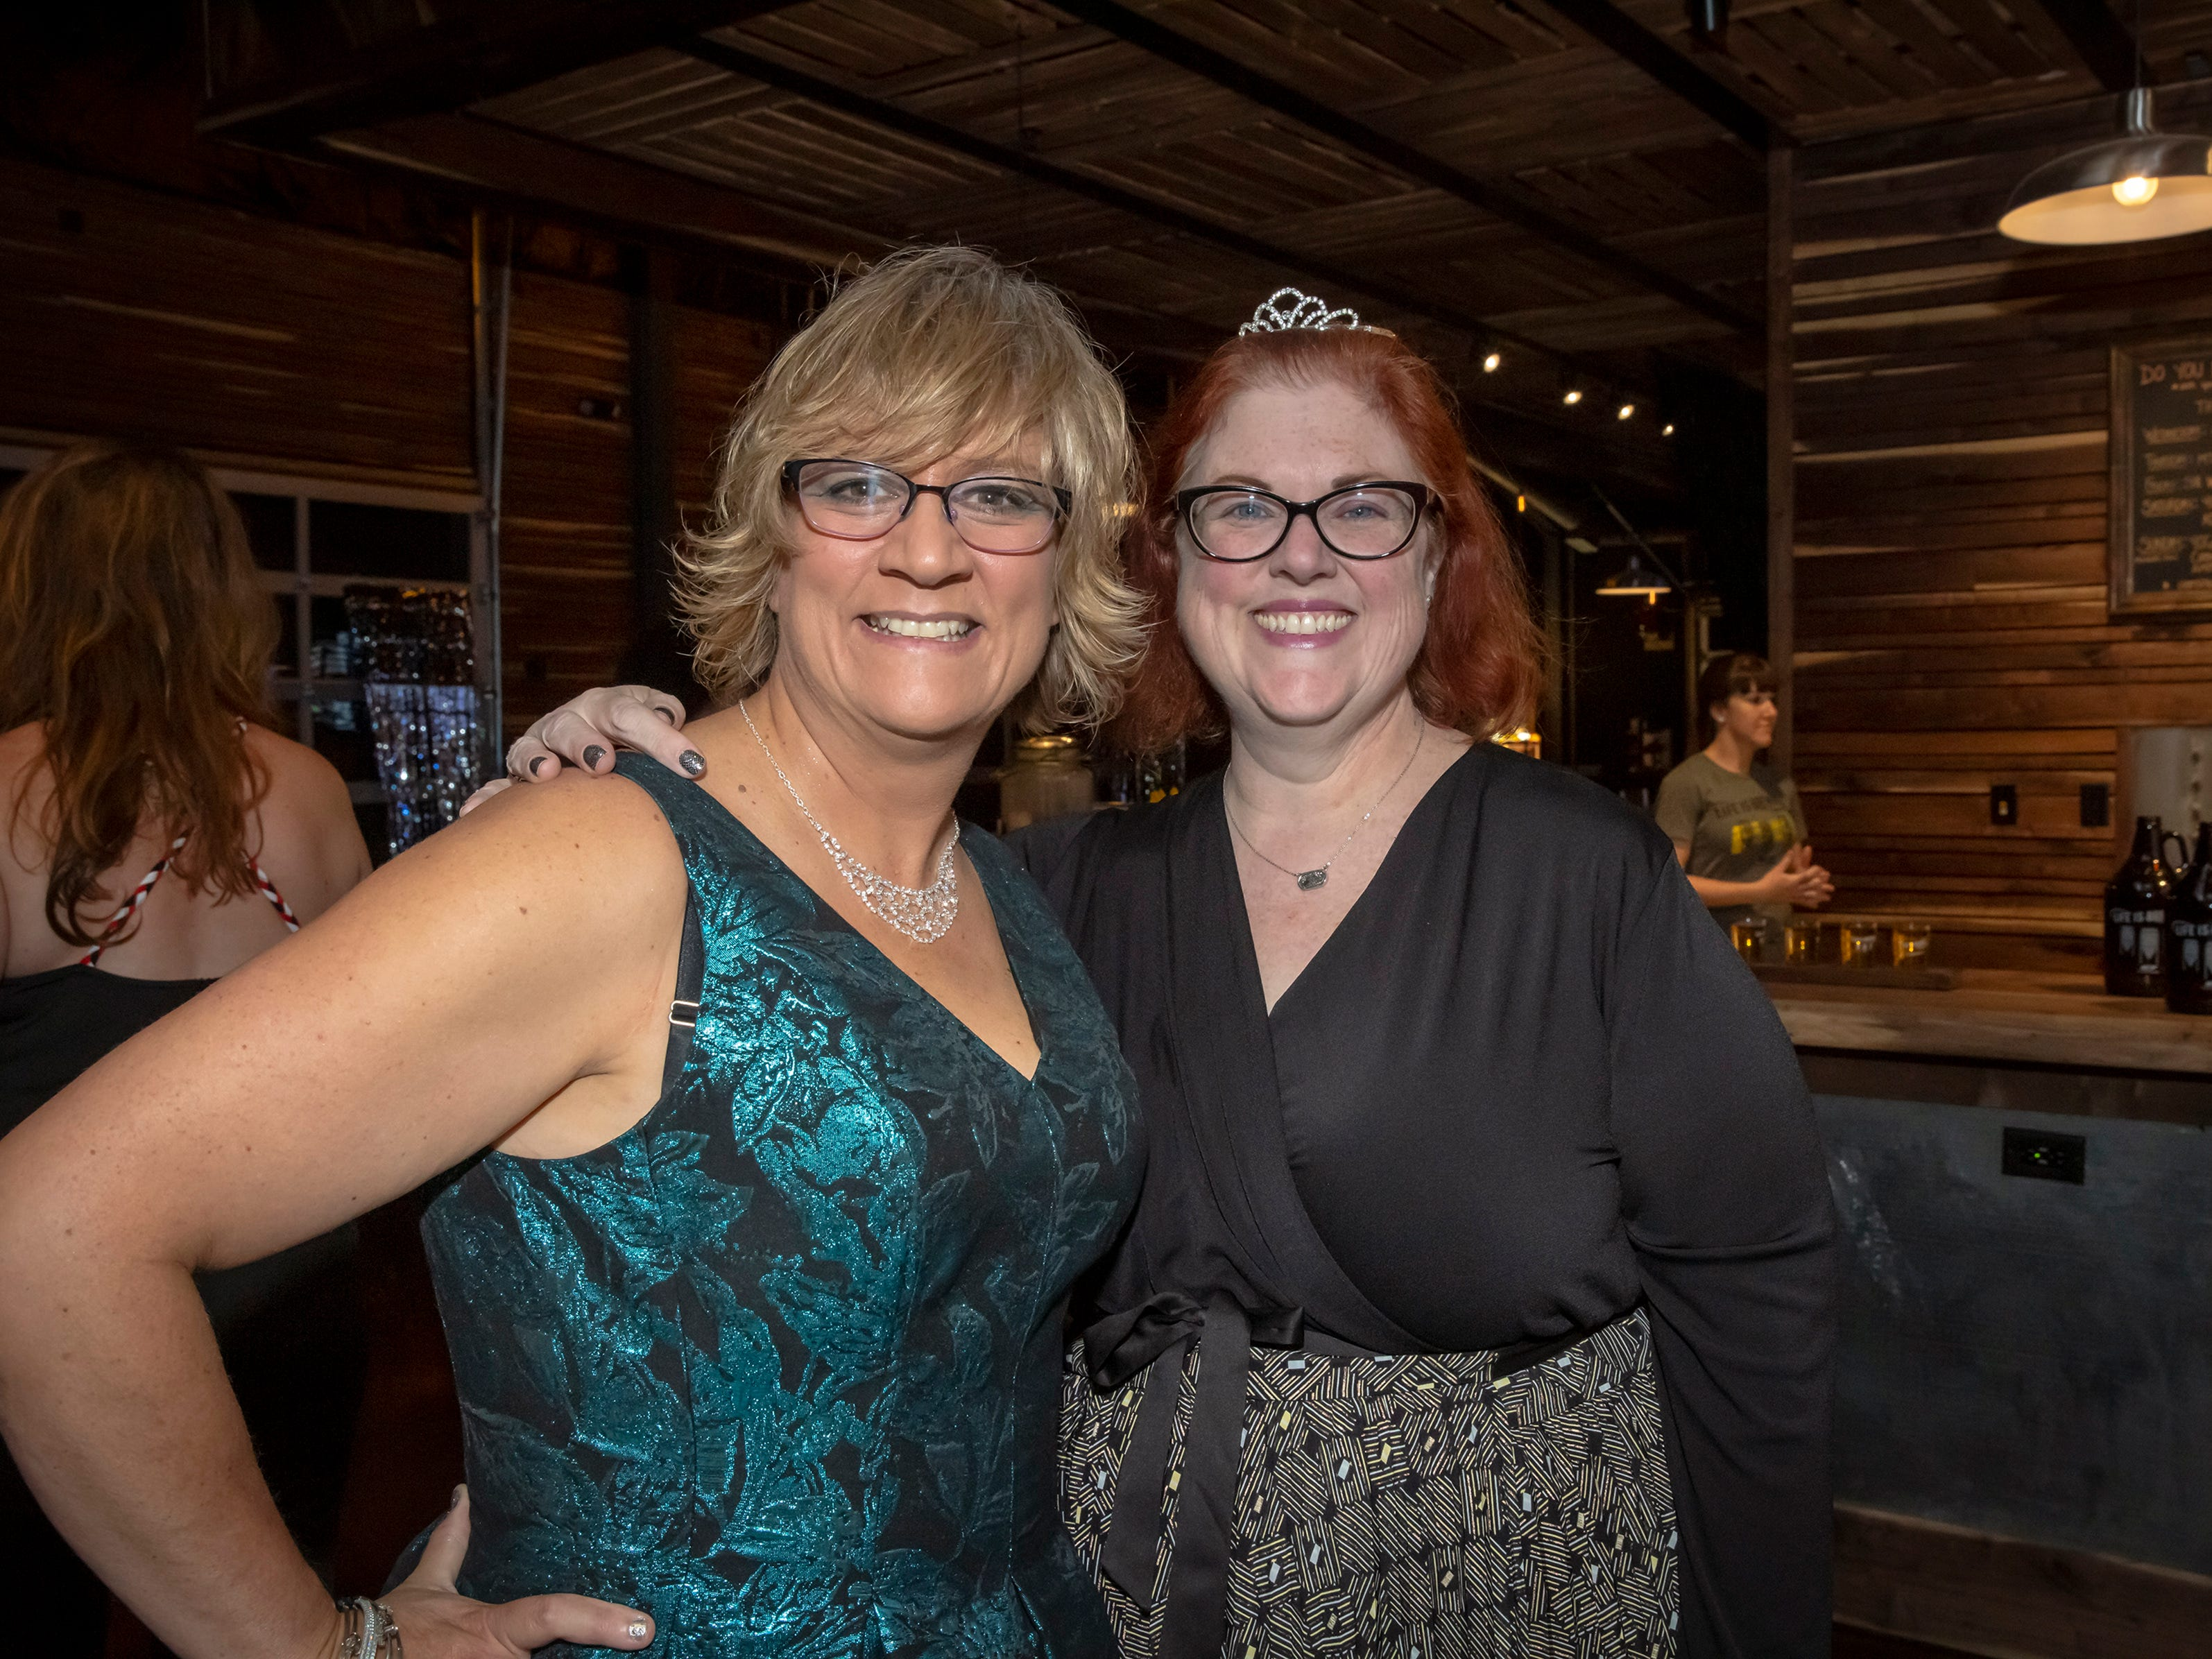 Ann Lelue and Beth Rose at the Adult Prom held at Hop Springs to benefit Kymari House, Saturday, May 11, 2019.